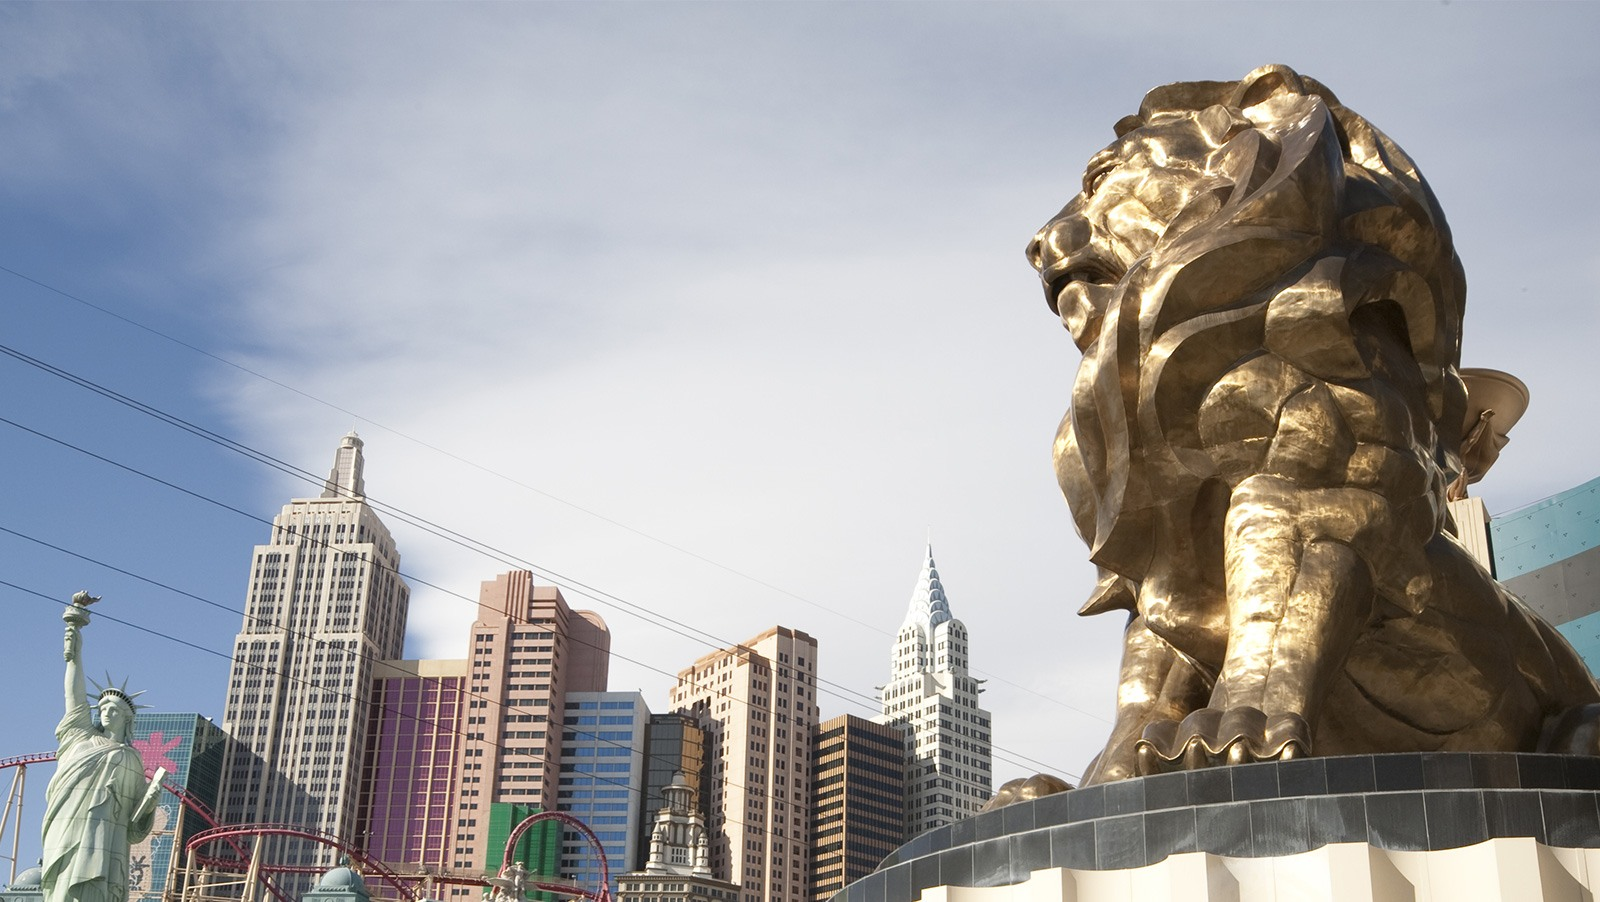 MGM Caesars merger in the works? Best wait a few months